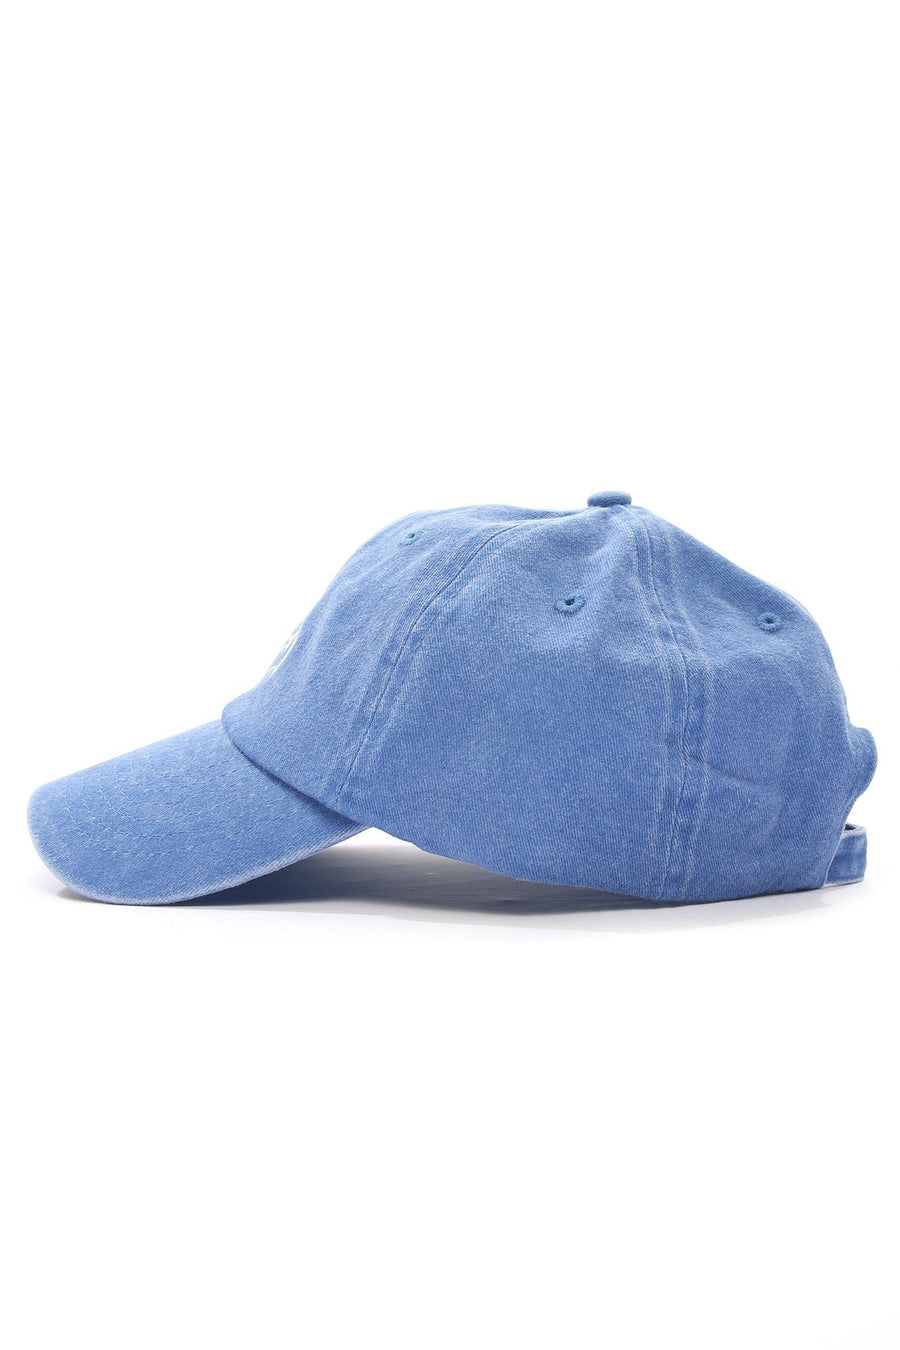 Sun Wave Solid White Logo Cap - Light Blue - Shore